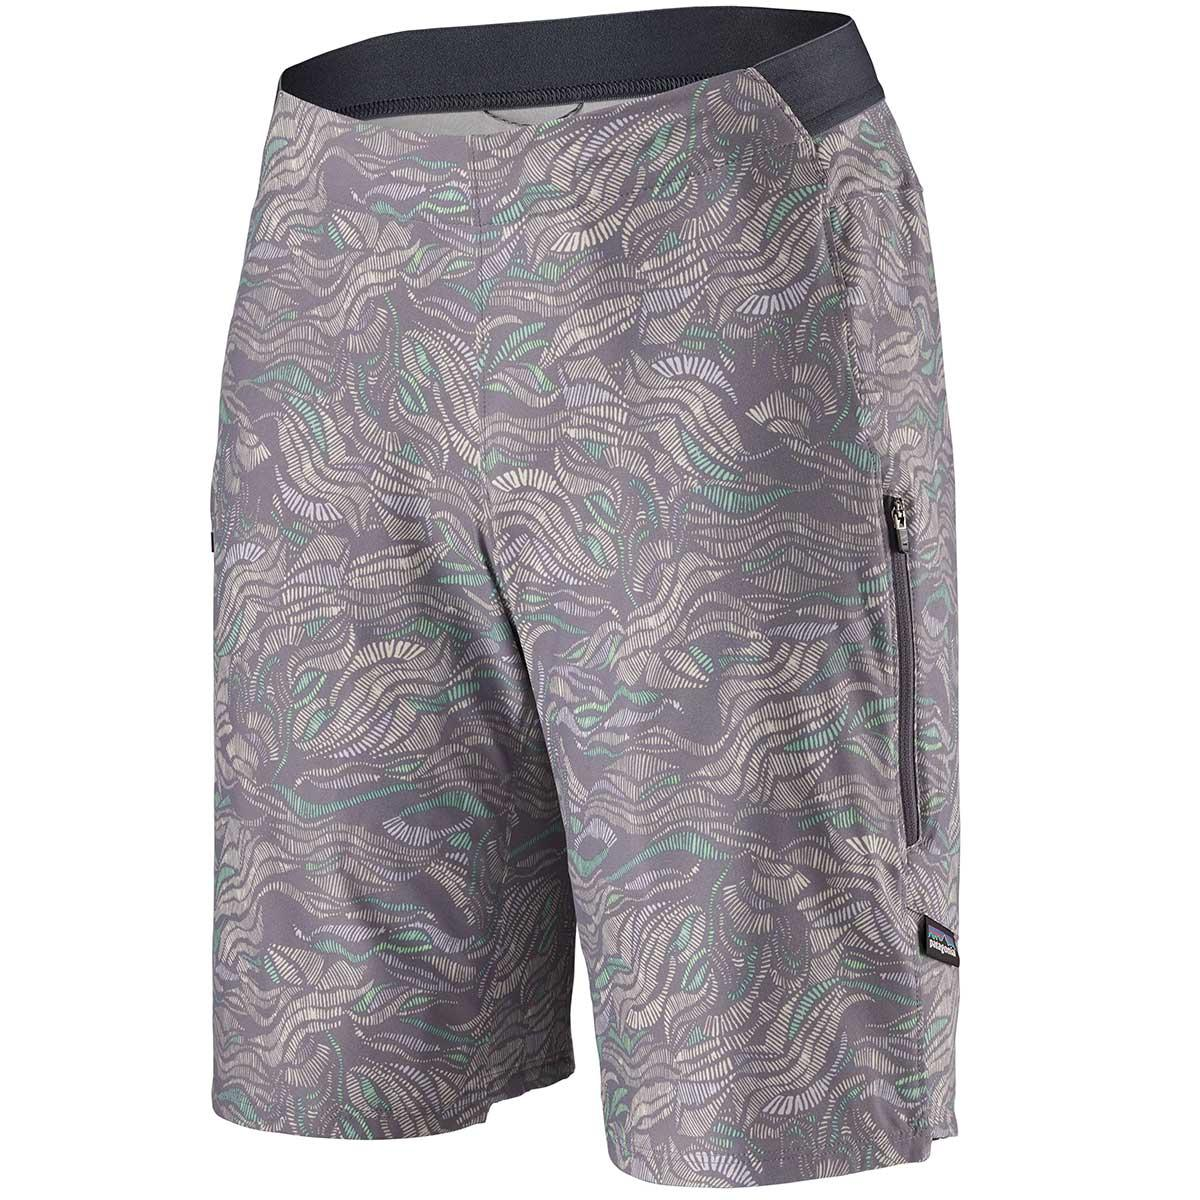 Patagonia women's Tyrollean Bike Short in Mississippi Delta and Smokey Violet front view